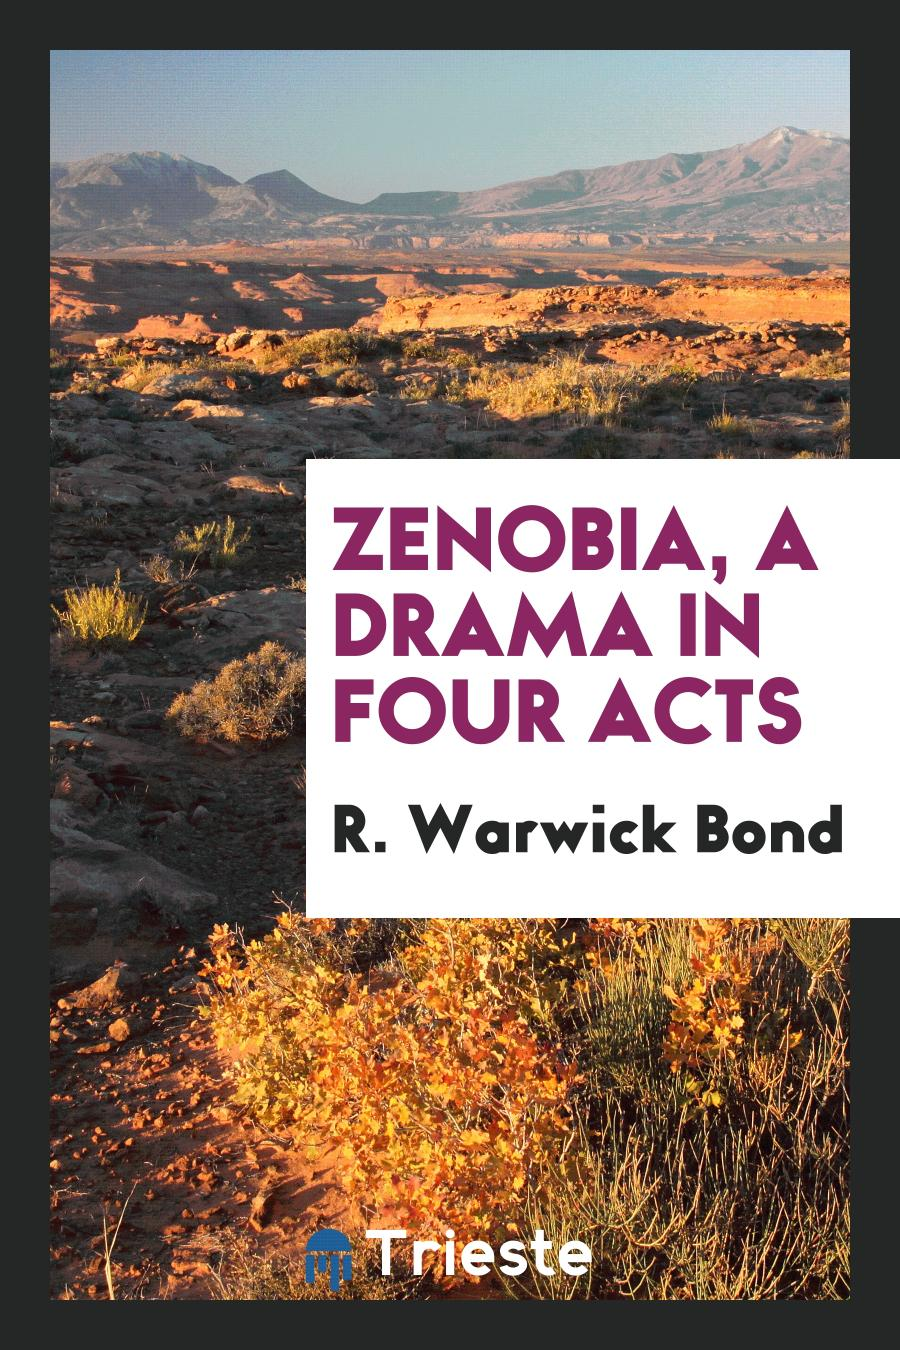 Zenobia, a Drama in Four Acts